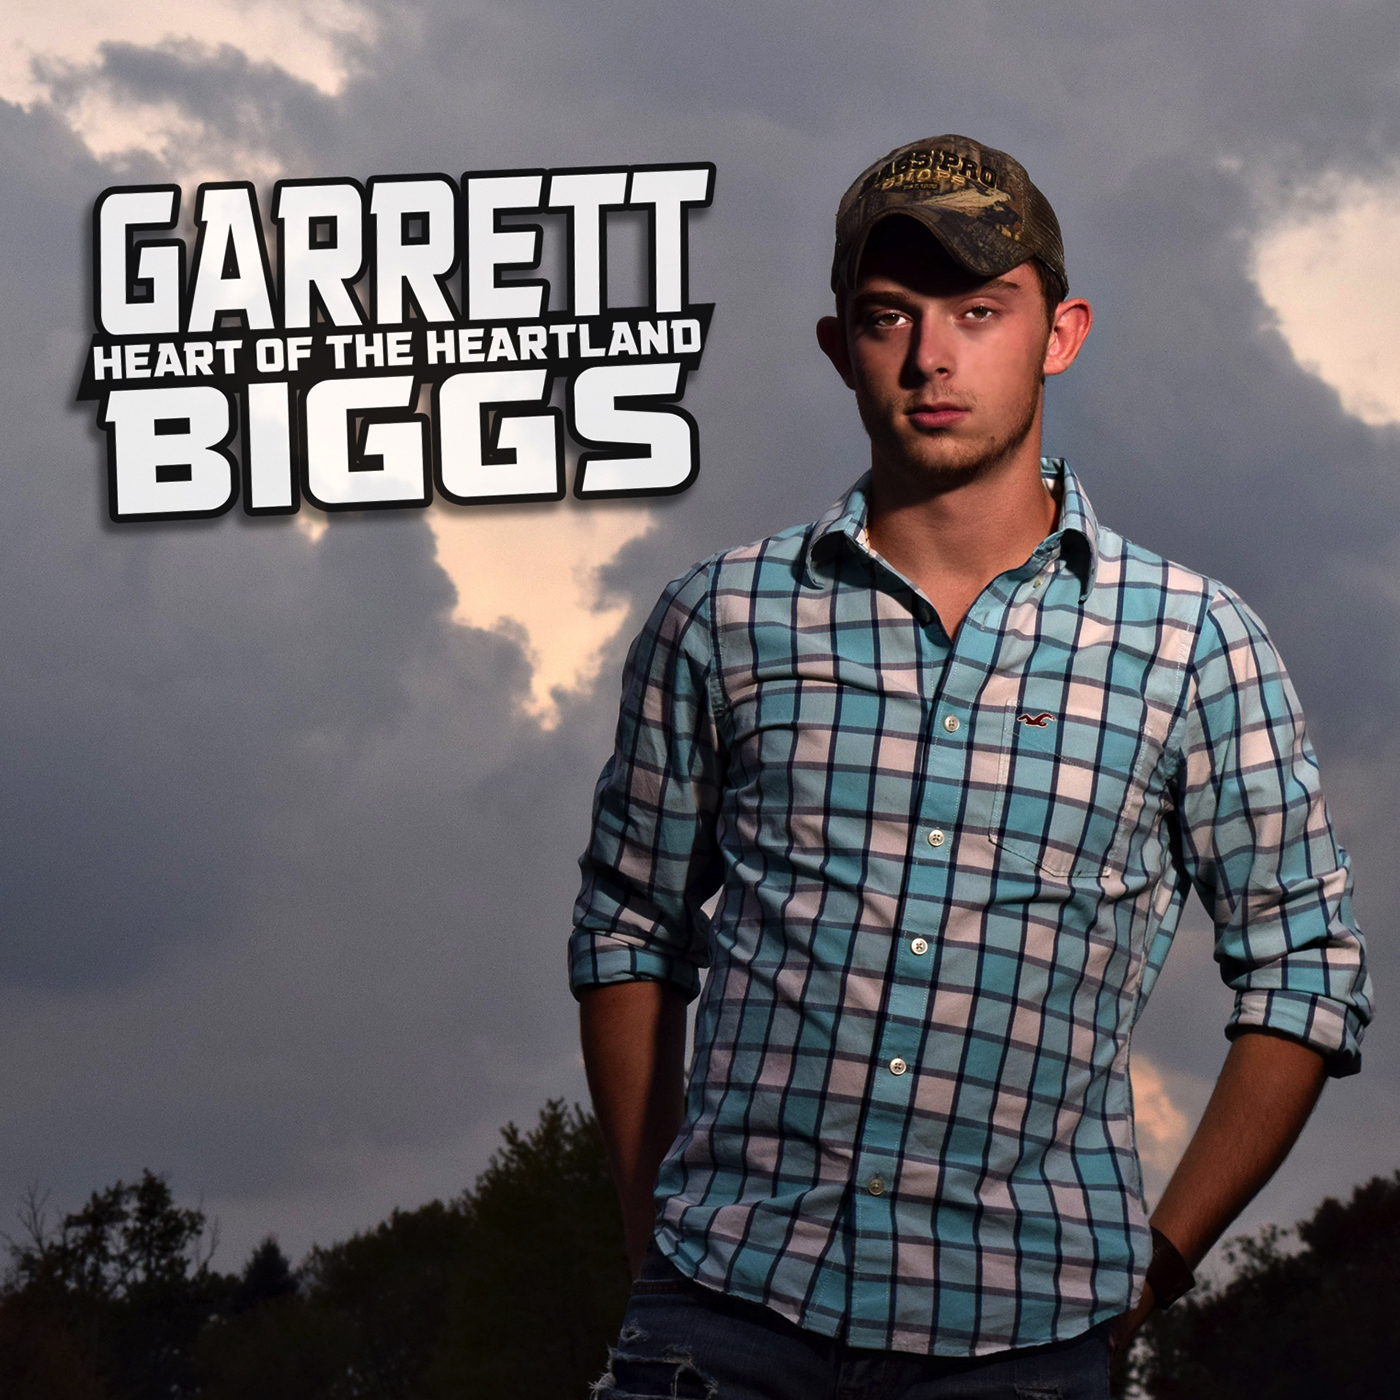 Garrett Biggs Album Cover